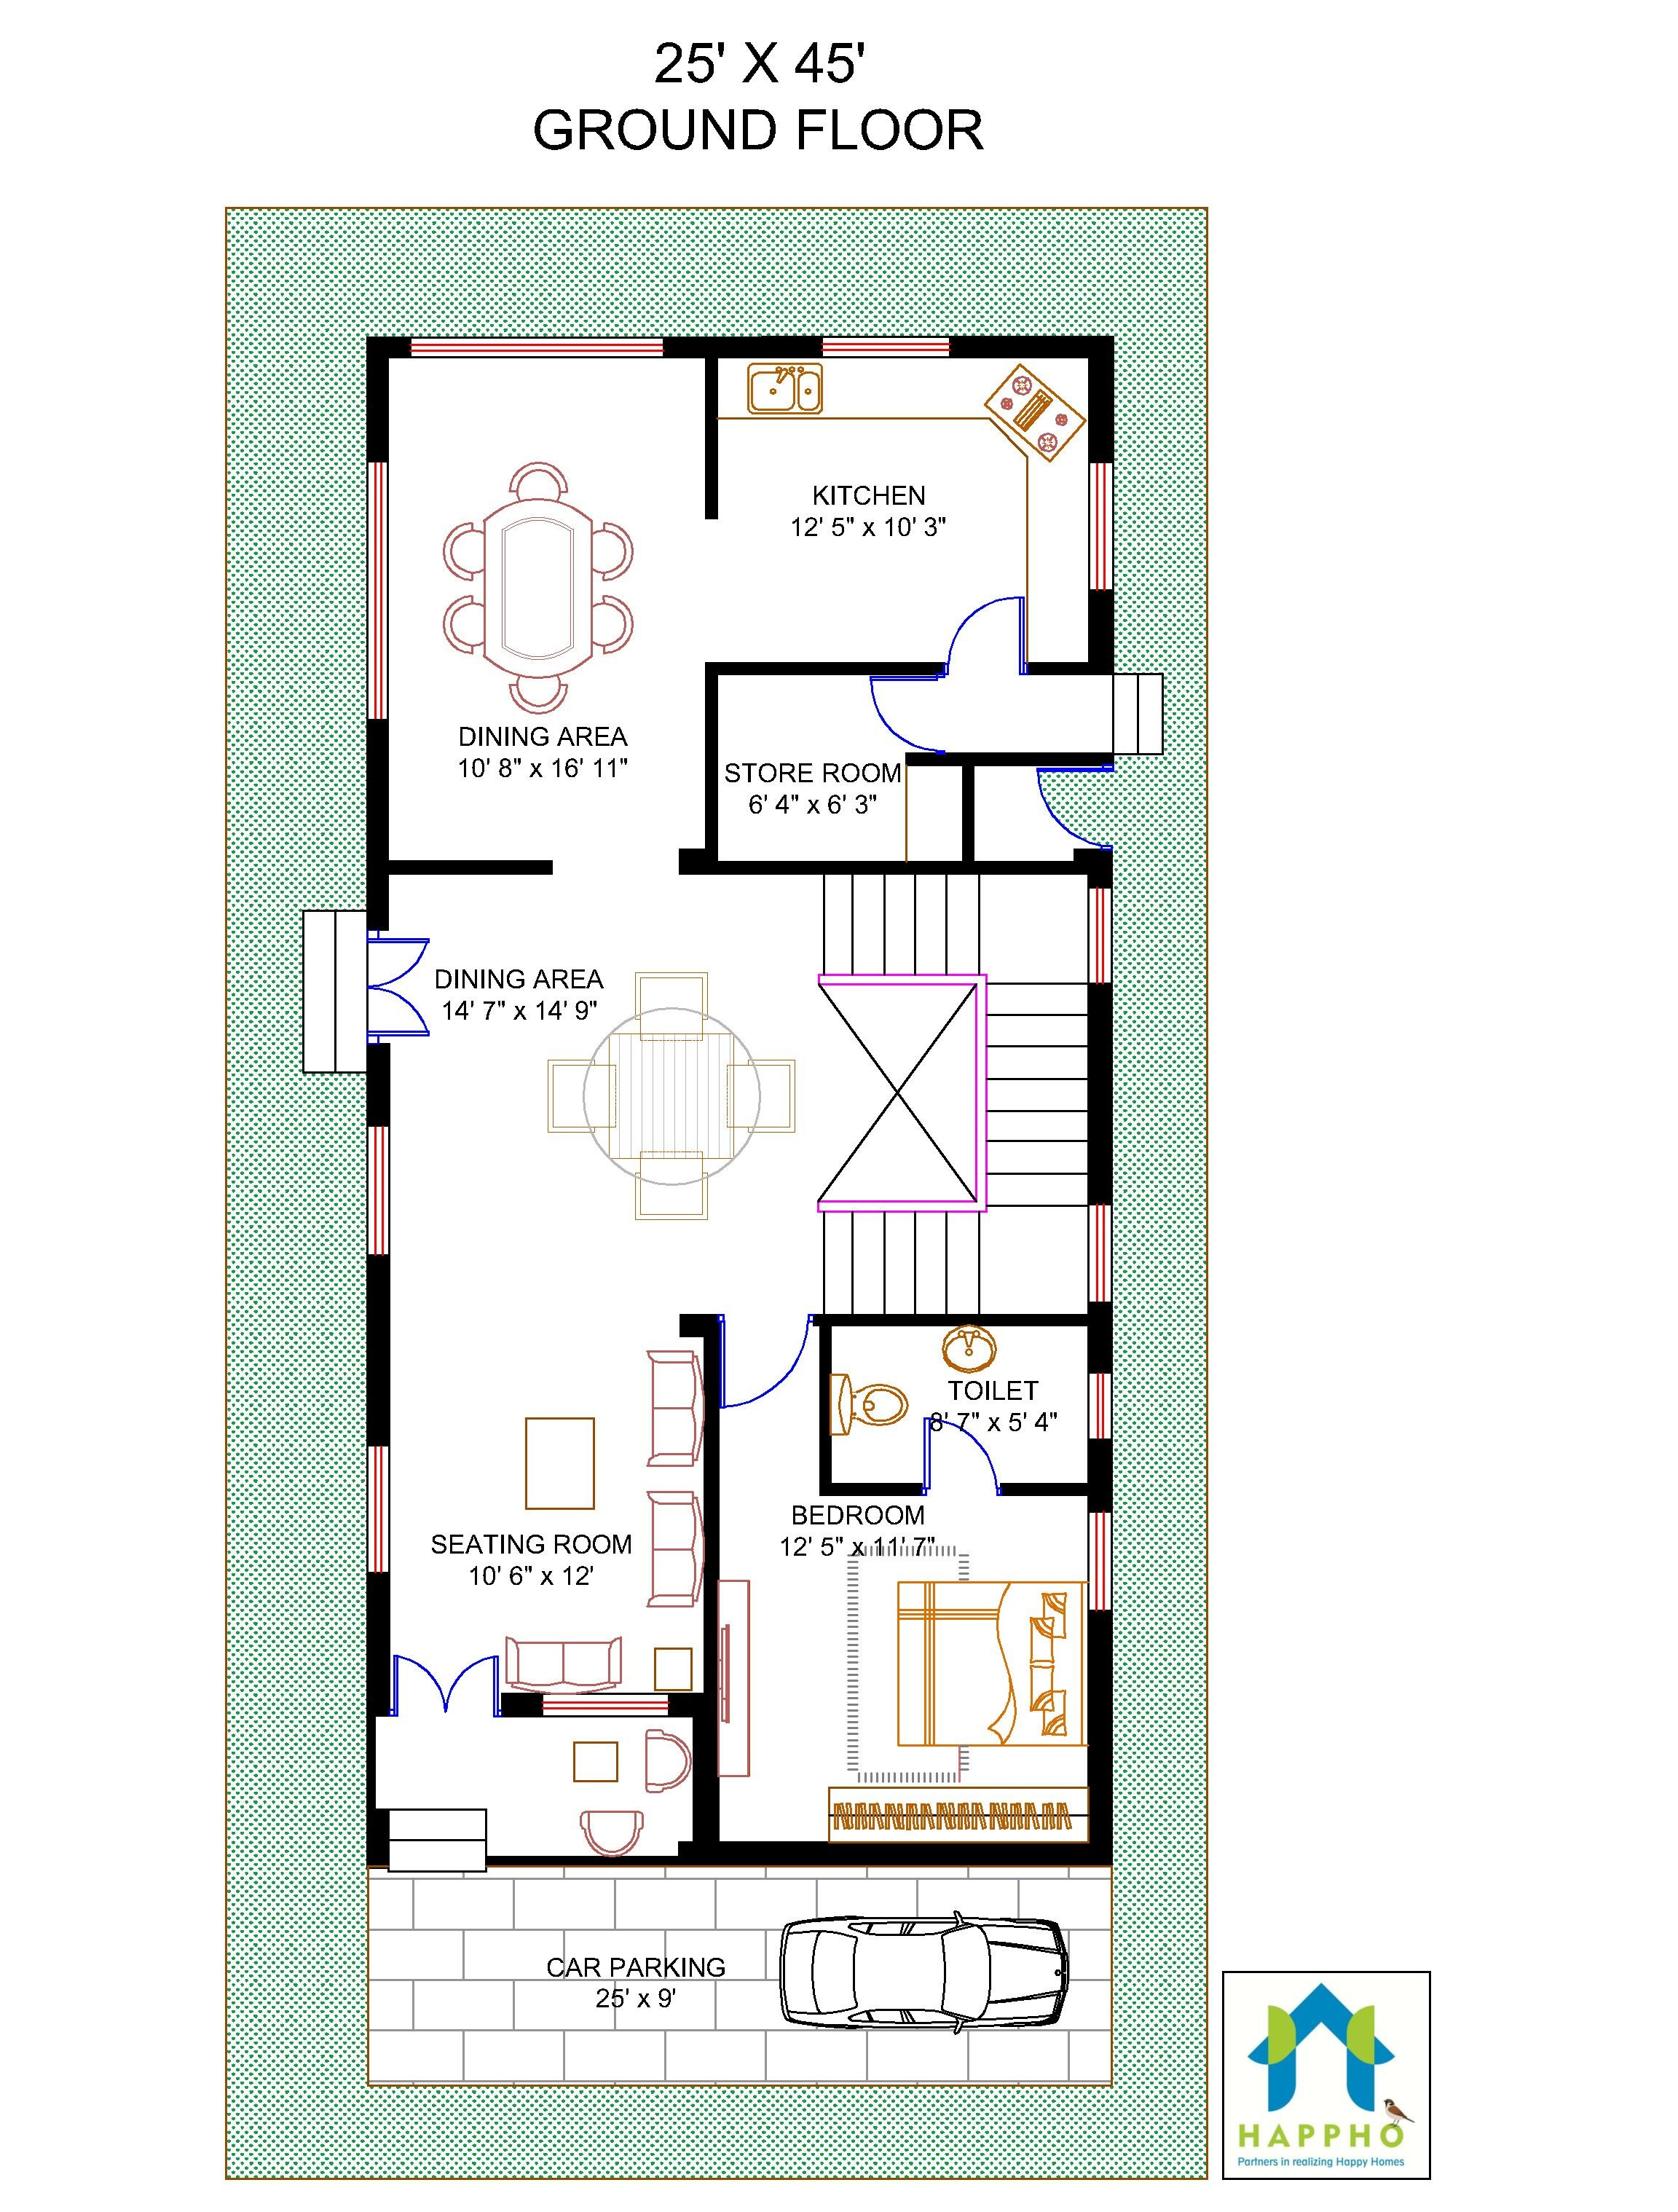 24 Fabulous Calculate Hardwood Flooring Square Footage 2021 free download calculate hardwood flooring square footage of how to calculate square feet for flooring flooring design for how to calculate square feet for flooring beautiful 1 bhk floor plan for 25 x 45